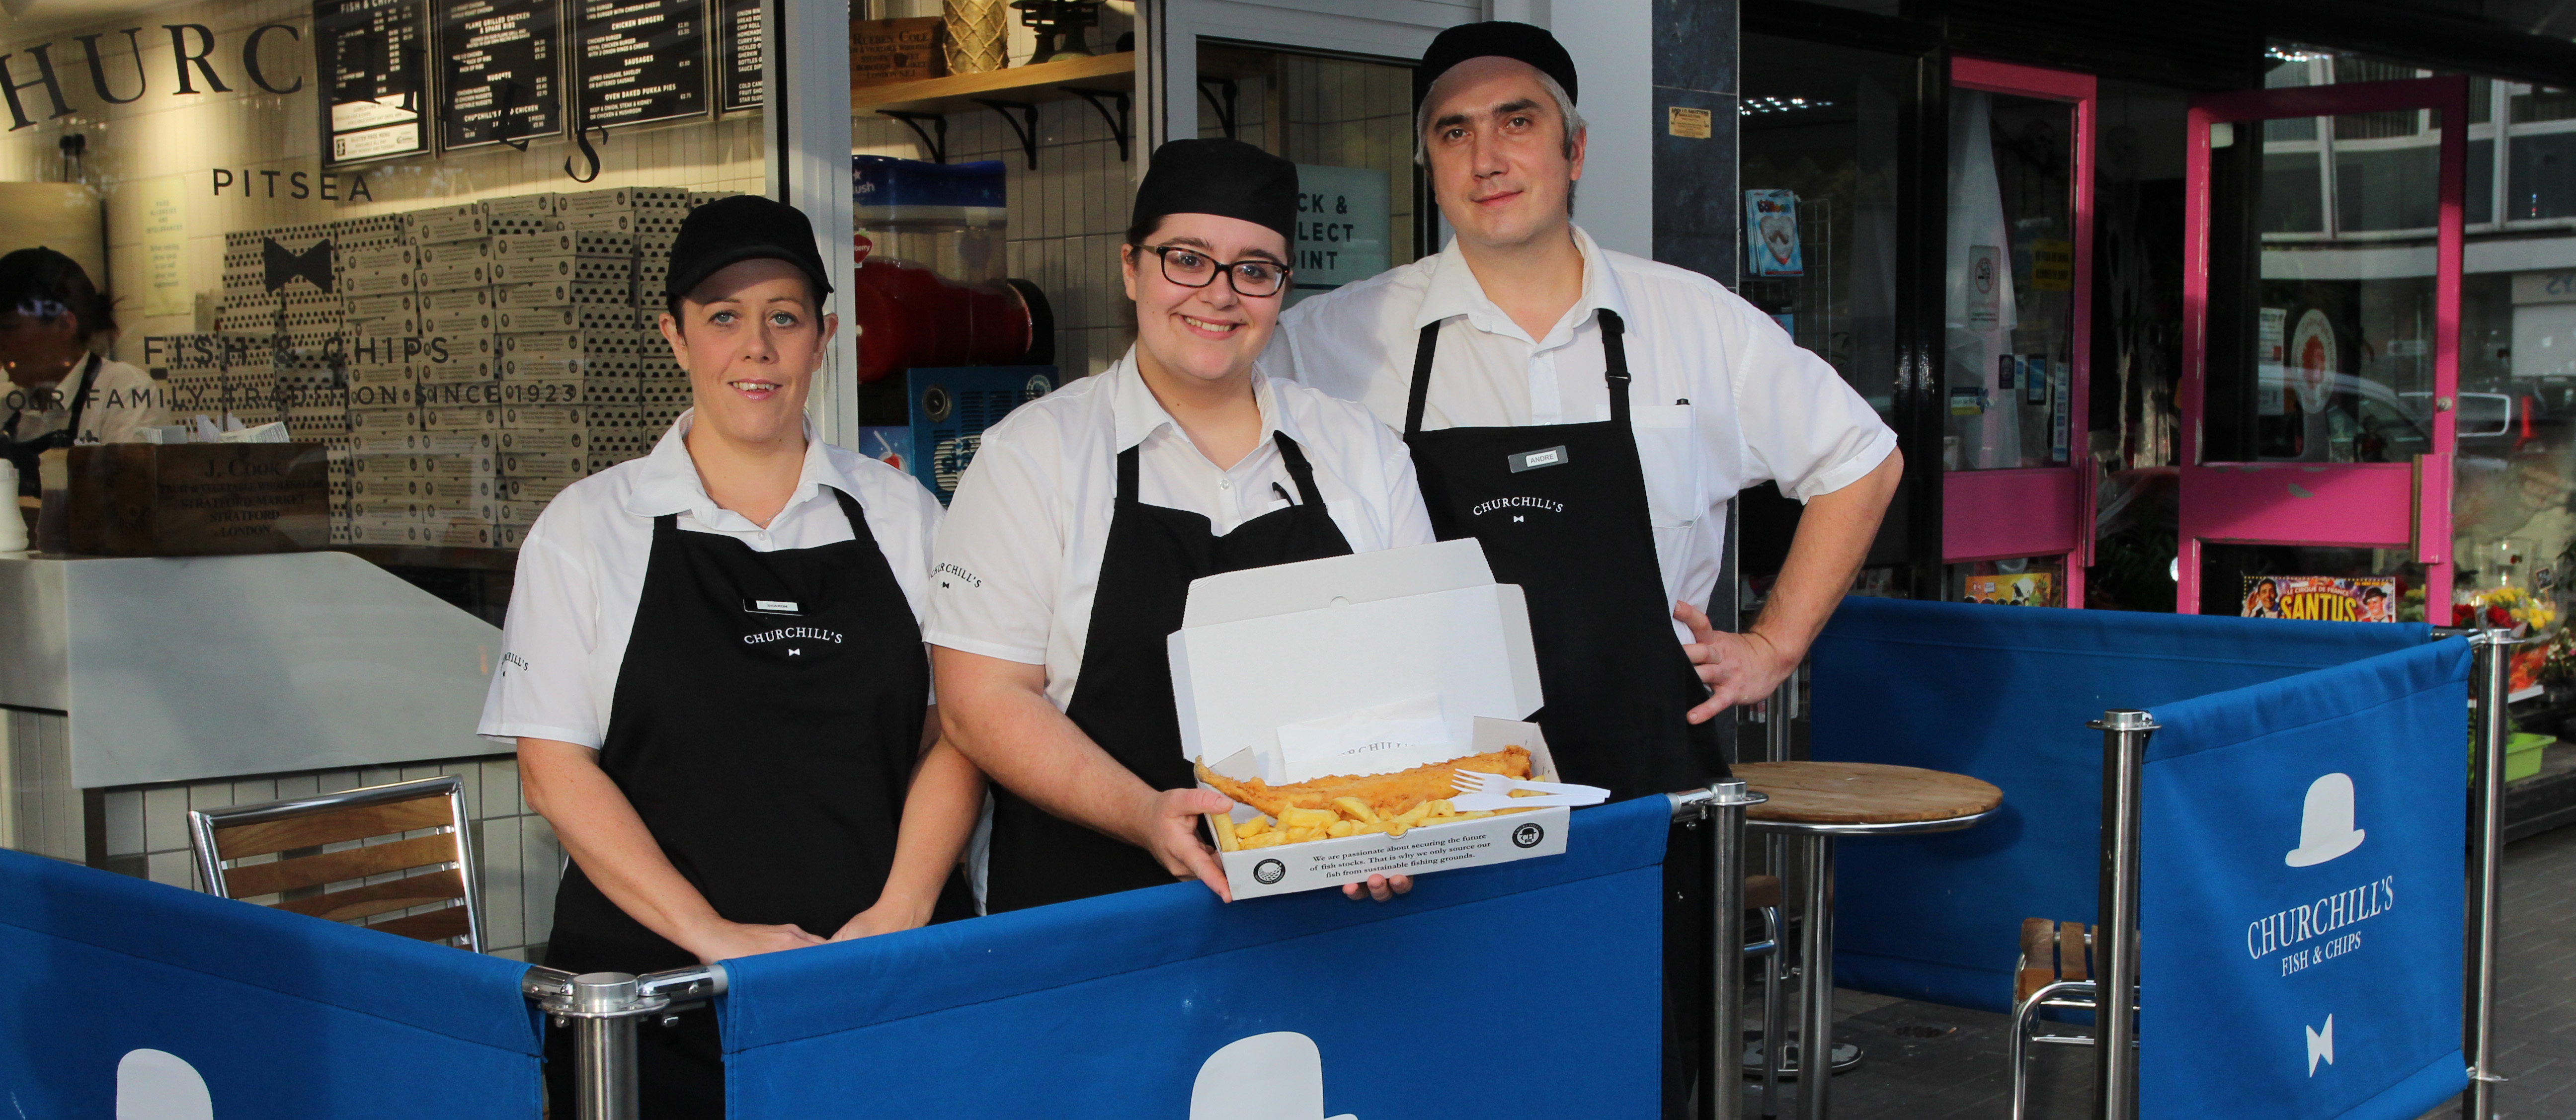 Pitsea Fish and Chips